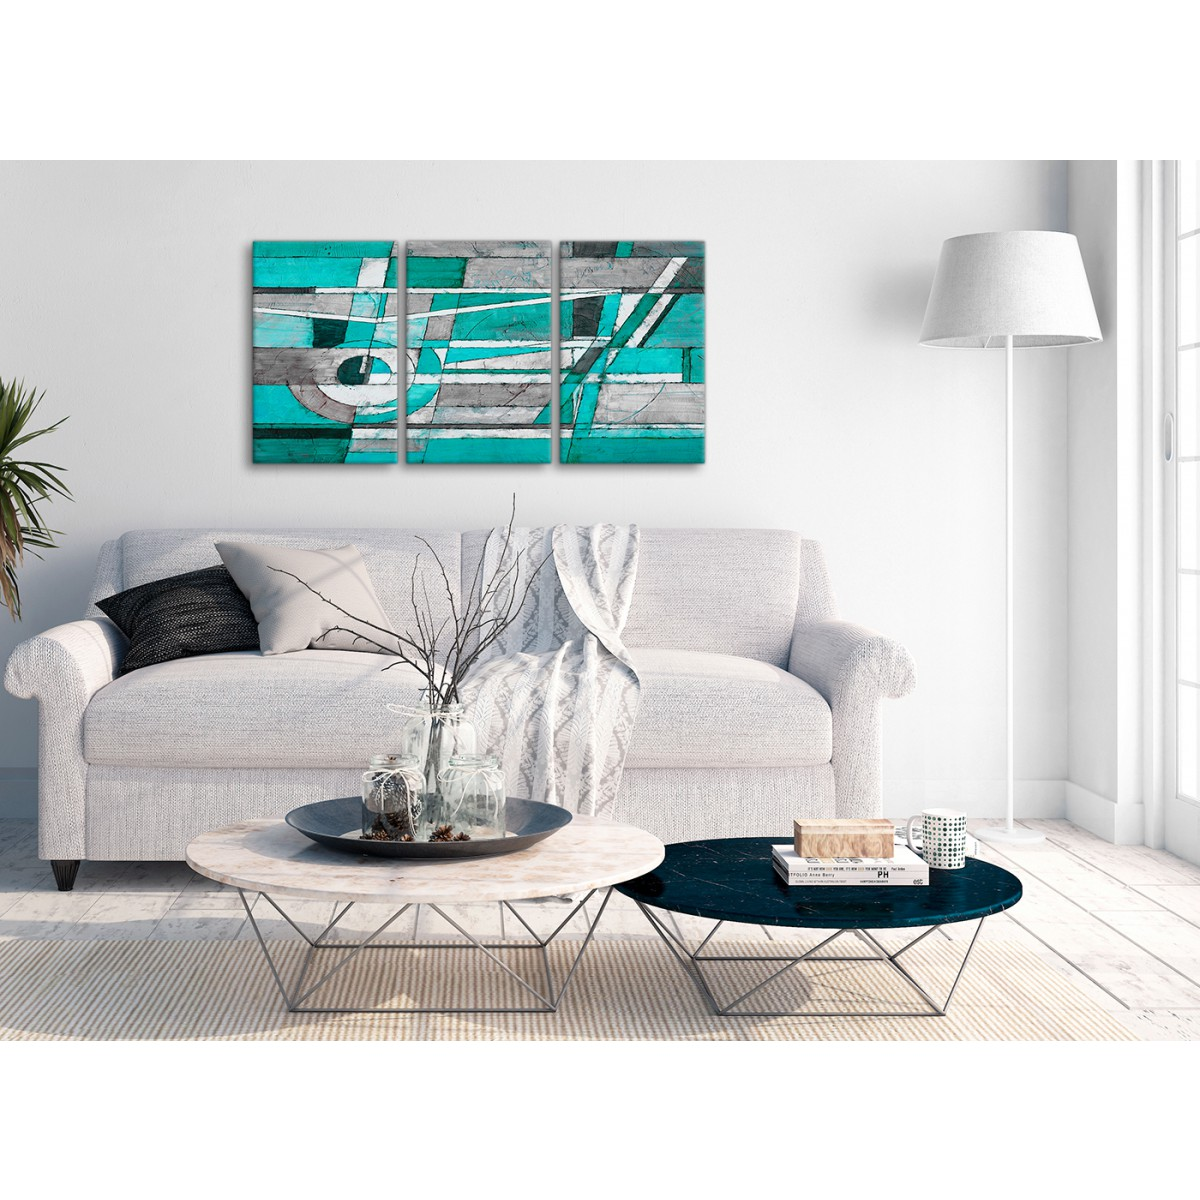 3 panel turquoise grey painting kitchen canvas pictures. Black Bedroom Furniture Sets. Home Design Ideas